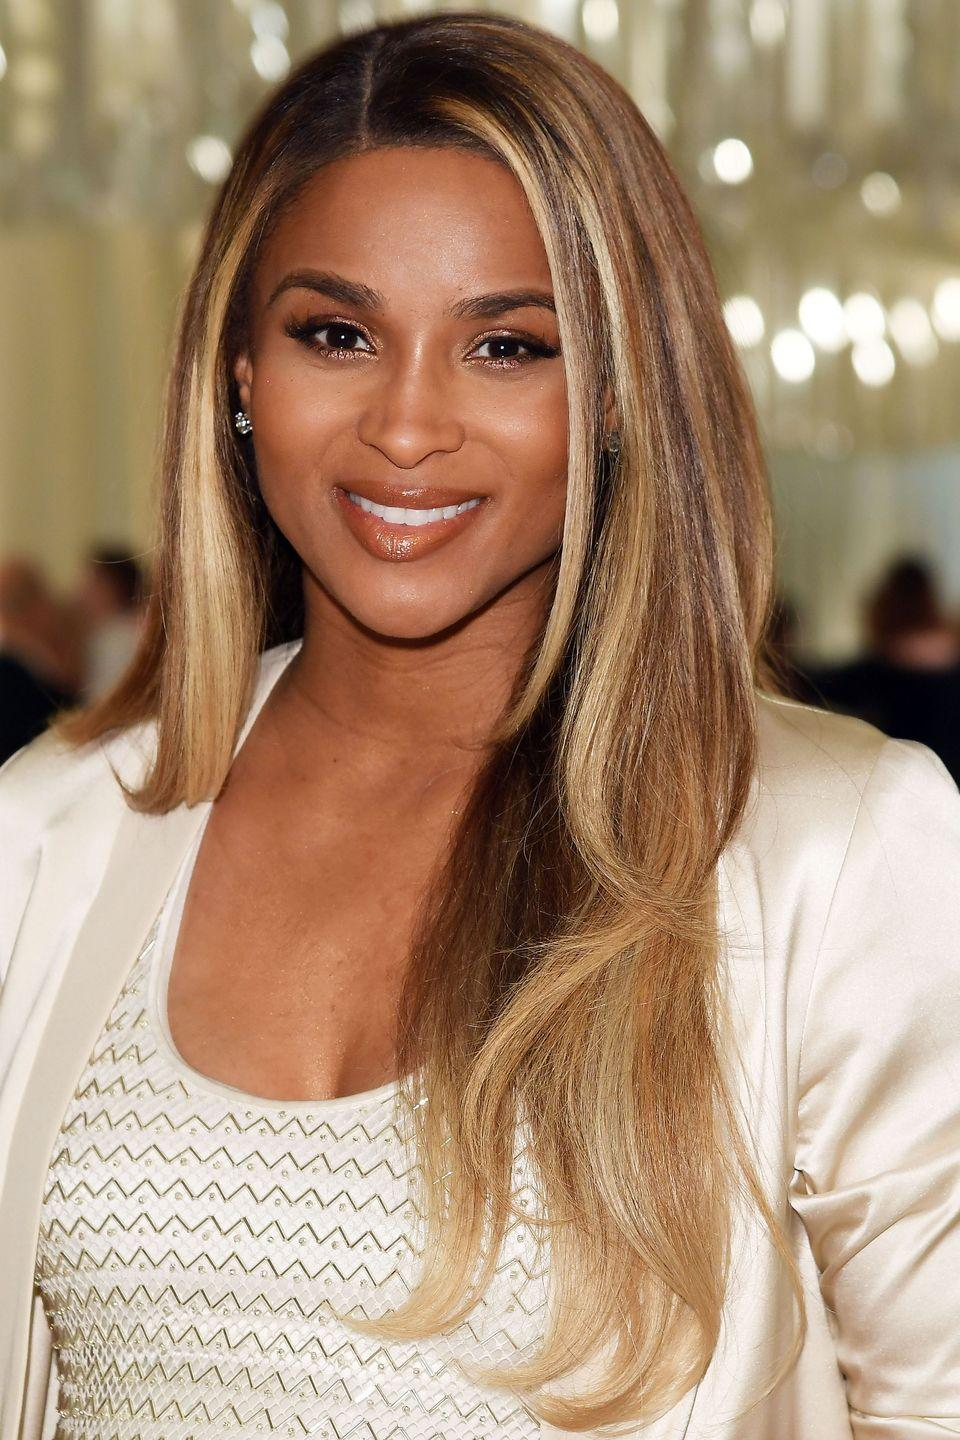 """<p>Ciara is also a big fan of shimmering <a href=""""http://www.goodhousekeeping.com/beauty/hair/a36372/color-highlights-to-choose/"""" rel=""""nofollow noopener"""" target=""""_blank"""" data-ylk=""""slk:blonde highlights"""" class=""""link rapid-noclick-resp"""">blonde highlights</a>, even maintaining them through pregnancy.</p>"""